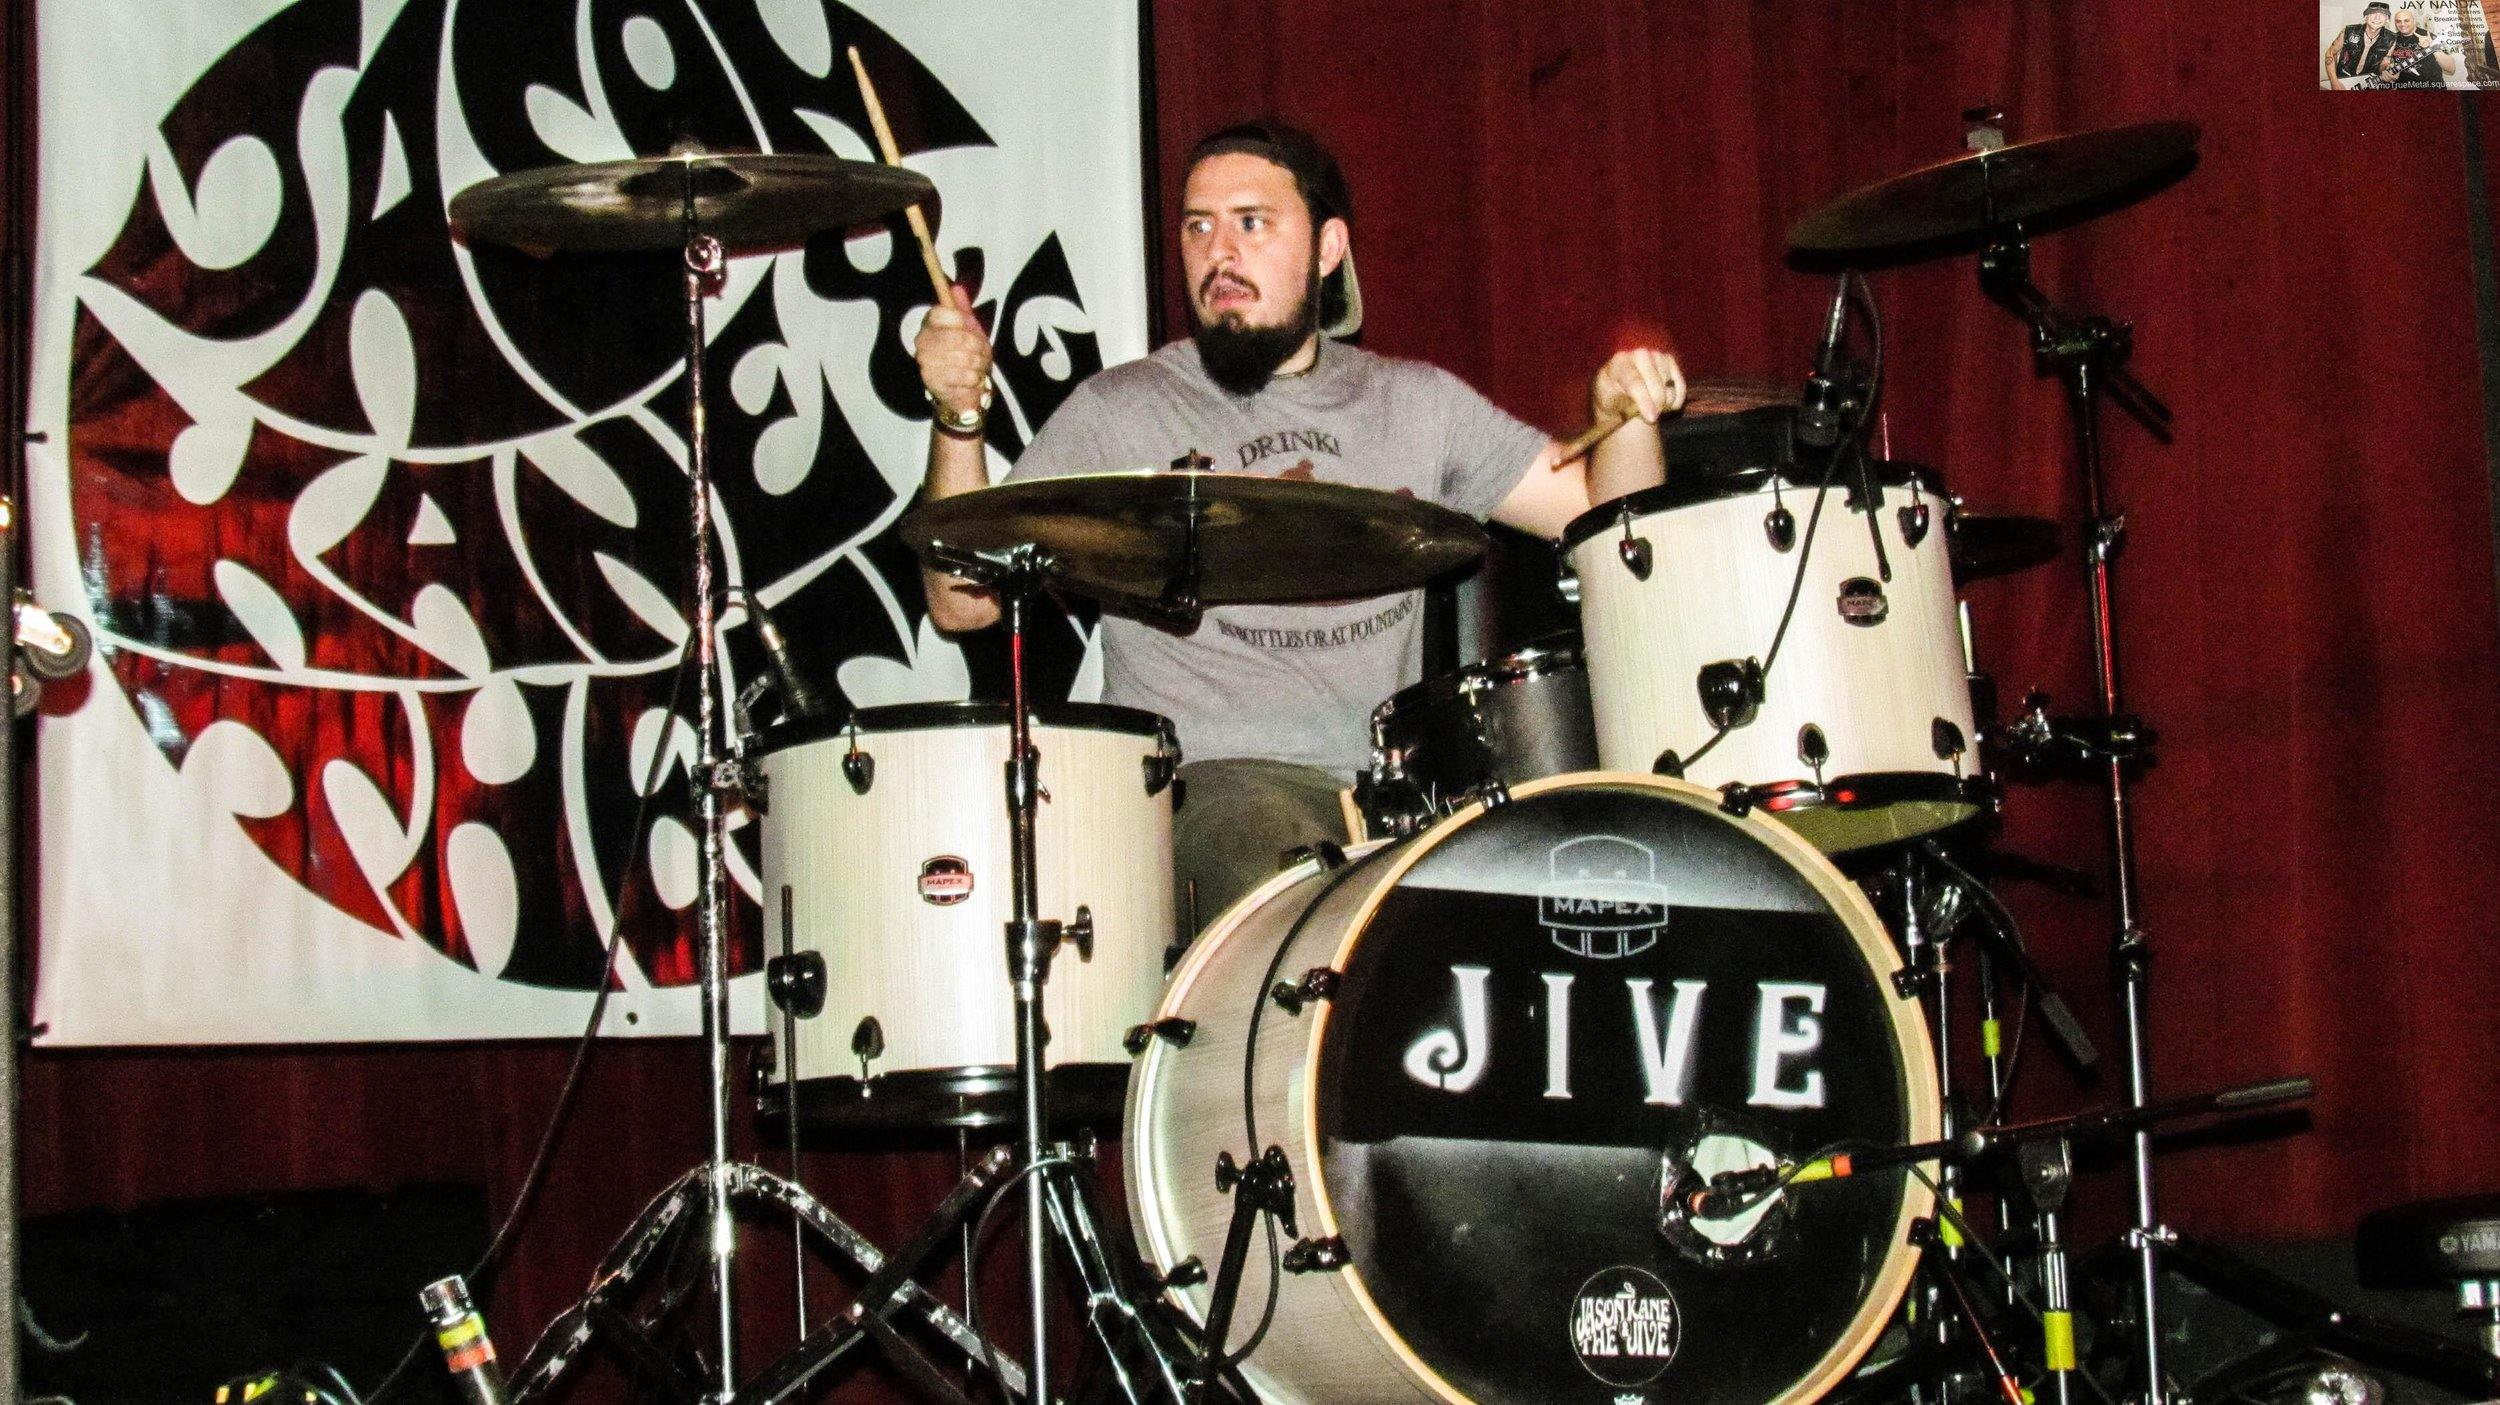 JASON KANE & THE JIVE